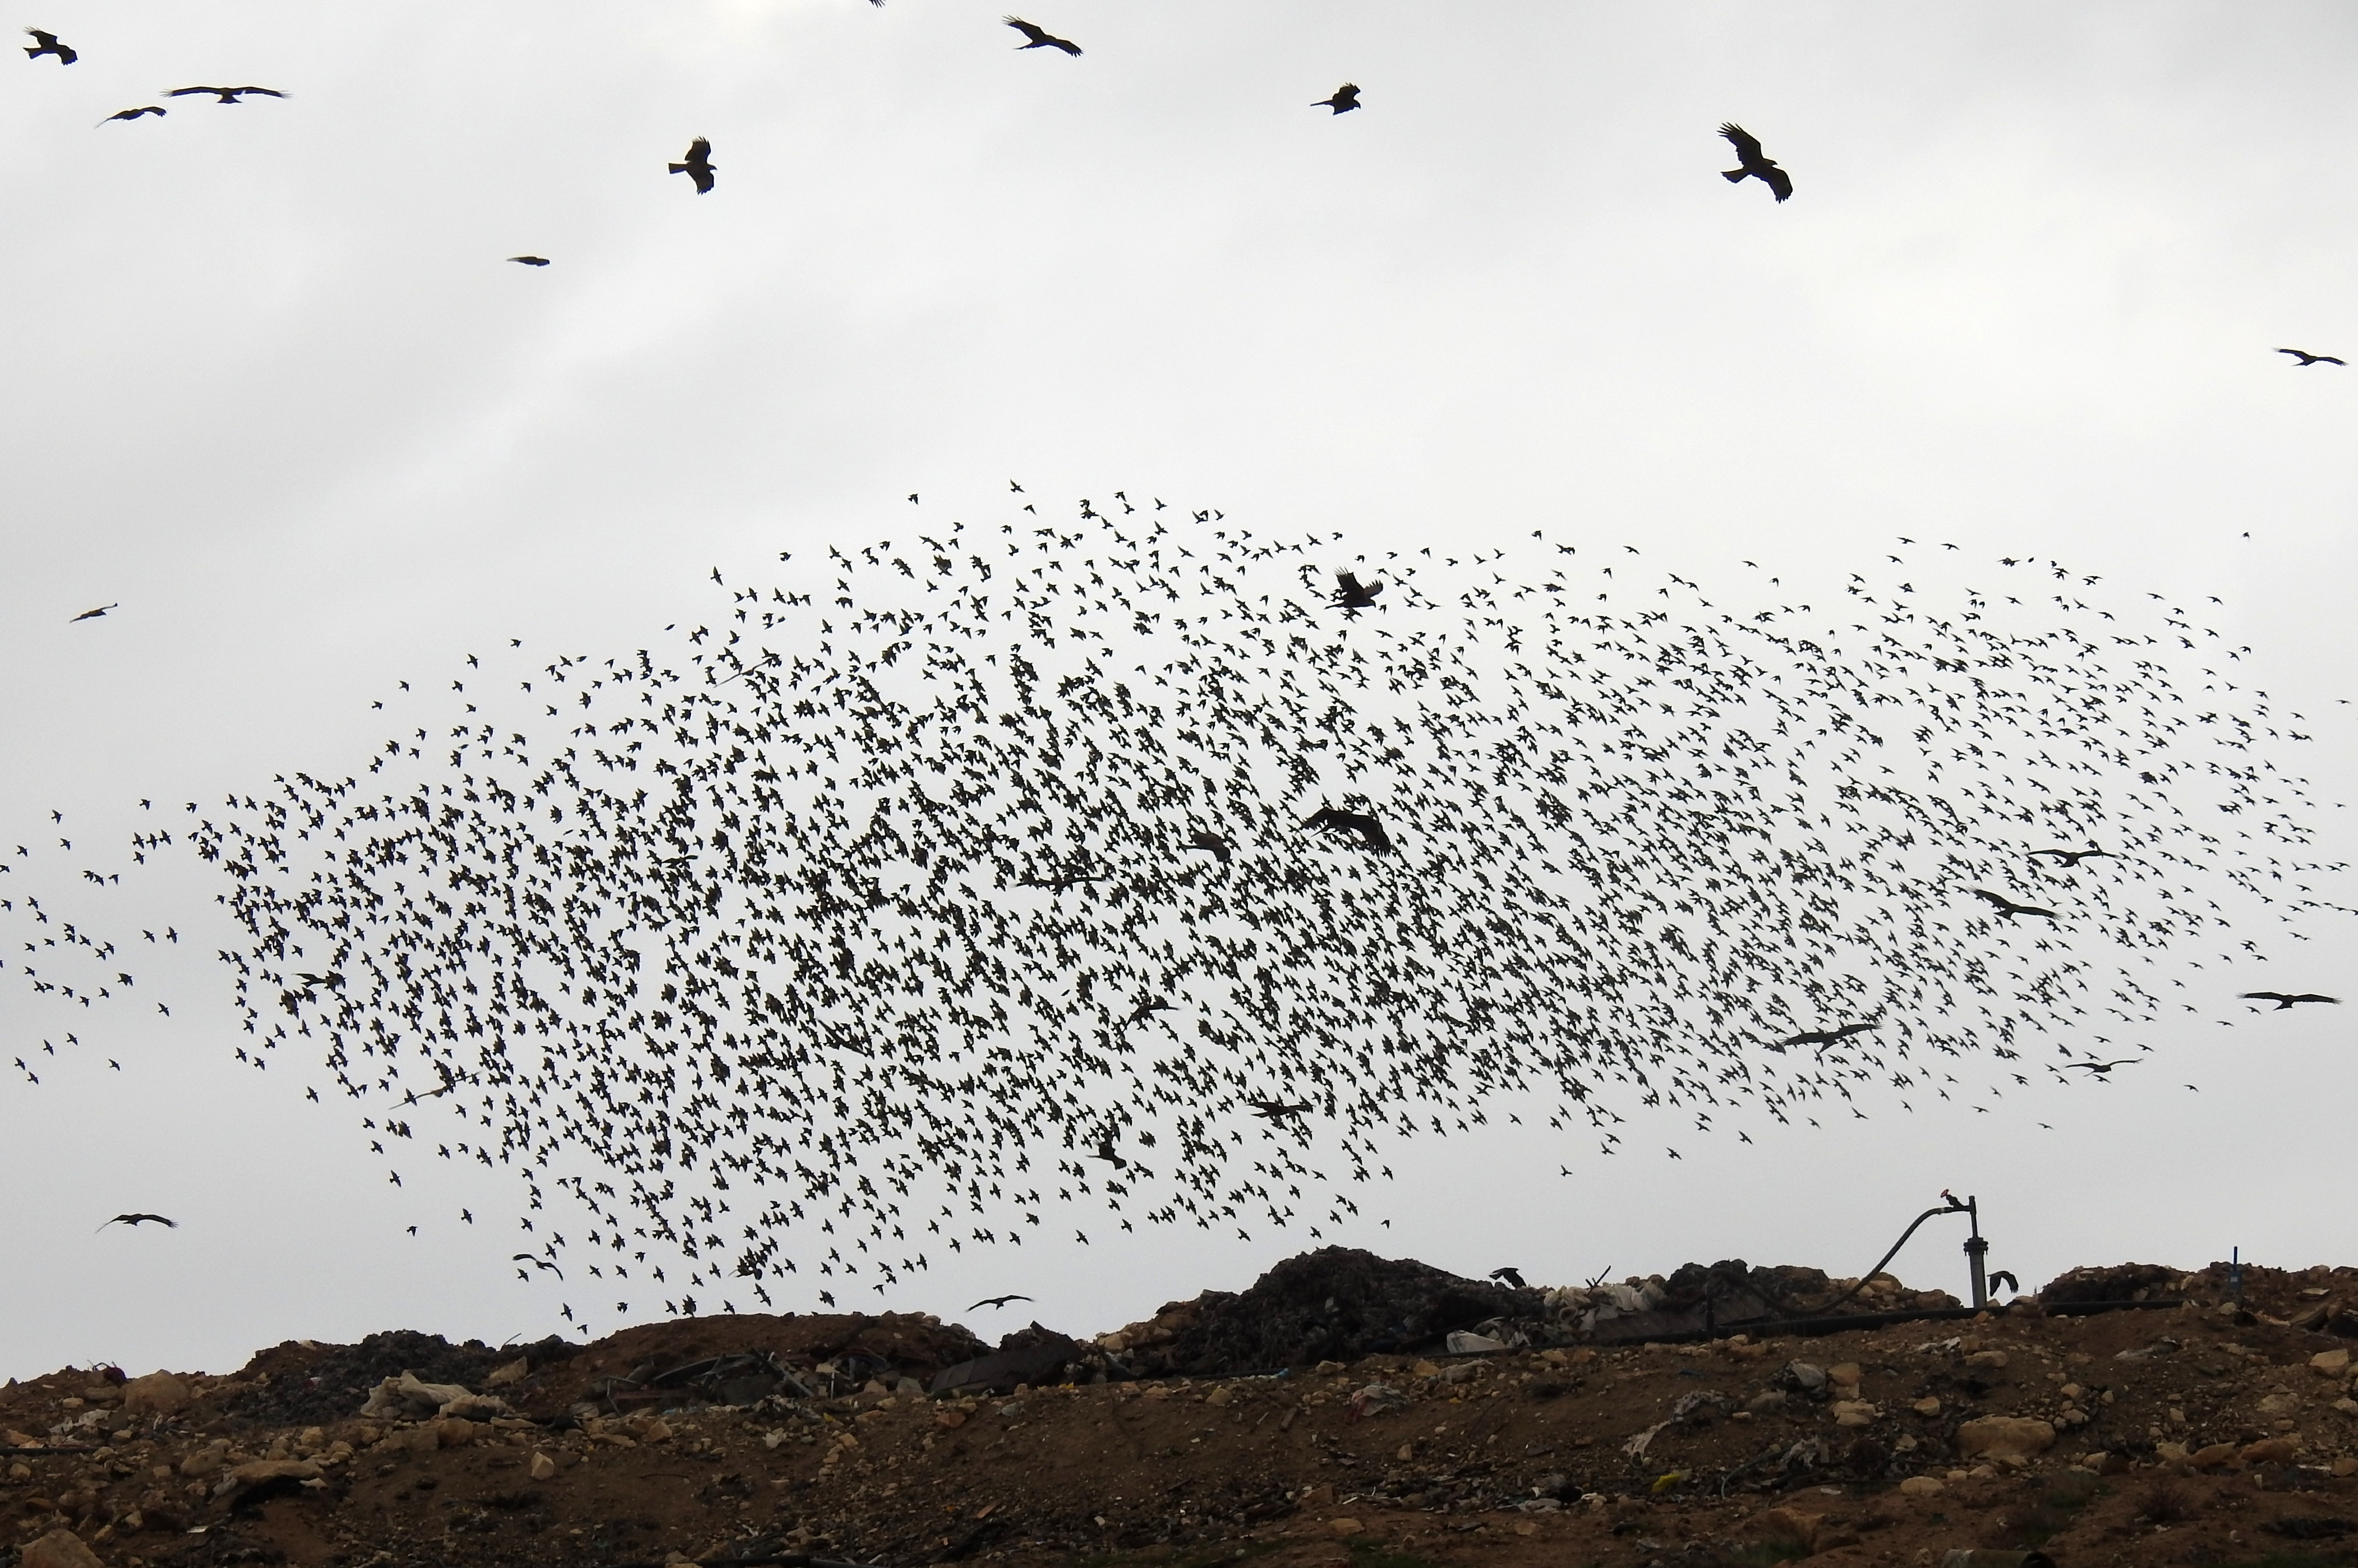 Let us not forget the starlings